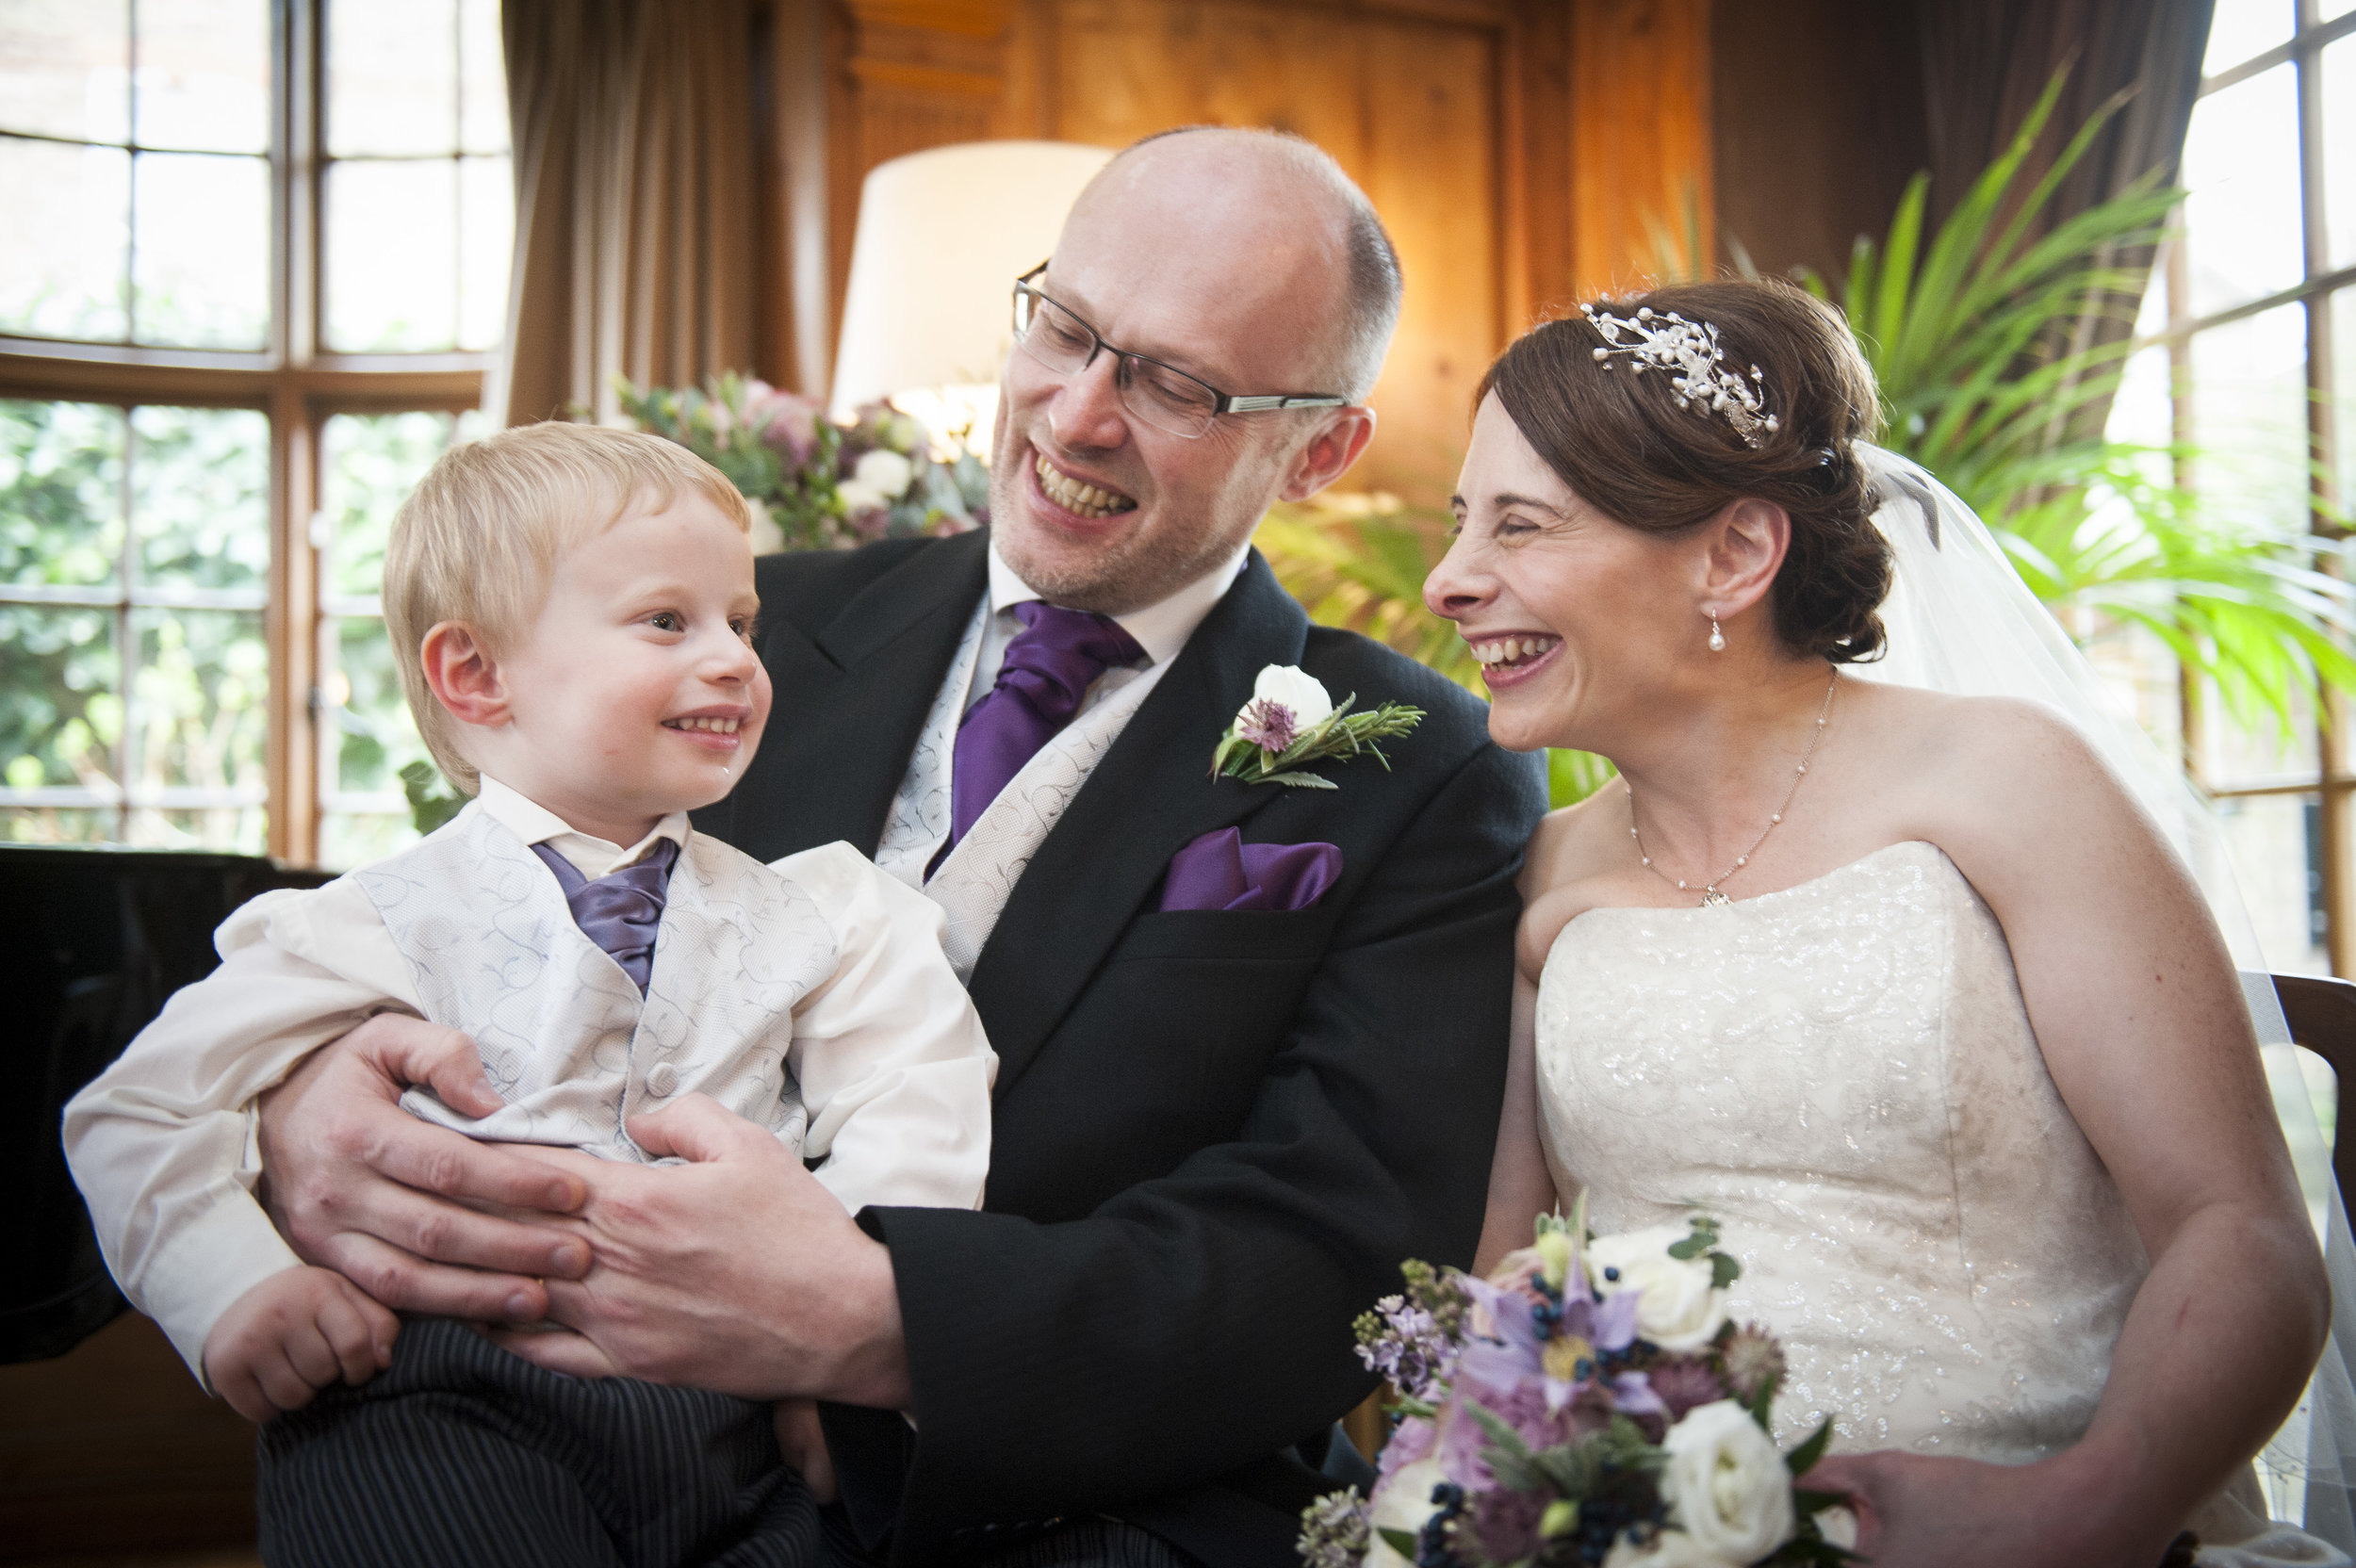 Jonathan and Geraldine - I chose Jason Pierce-Williams as our photographer for our wedding at Burgh House in Hampstead from a selection recommended to us by the venue. I had seen a simply beautiful photo on his website of a couple getting married at Burgh House. All I wanted was for him to achieve the same for us. However when I called him, I explained that we had a couple of issues that might affect his ability to achieve such good work. Firstly I was going to be 6 months pregnant by the time the wedding came around; and certainly no bride wants to look big in her wedding photos. Also there is a significant height difference between my husband and I, which always affects how we look in photographs together. Finally we have a 2 year old son that was going to be an integral part of the ceremony. However, who can predict what havoc a toddler might create just when you want him to be angelic. Jason wasn't phased by any of this, and took all of these issues completely in his stride. He achieved the most stunning photos for us, really capturing the essence of our little family on our special day. He also created our own beautiful, but completely natural version of the photo I had so admired, in the end quite different to the previous couple, extremely touching and most importantly very much us! Both my husband and I do not like pictures of ourselves and always shy away from the camera. However Jason has given us both an incredible memory of our wedding day; and stunning photographs of us together that we never thought would be possible. We are absolutely delighted with them. Thank you! Jonathan and Geraldine Fitzsimmons